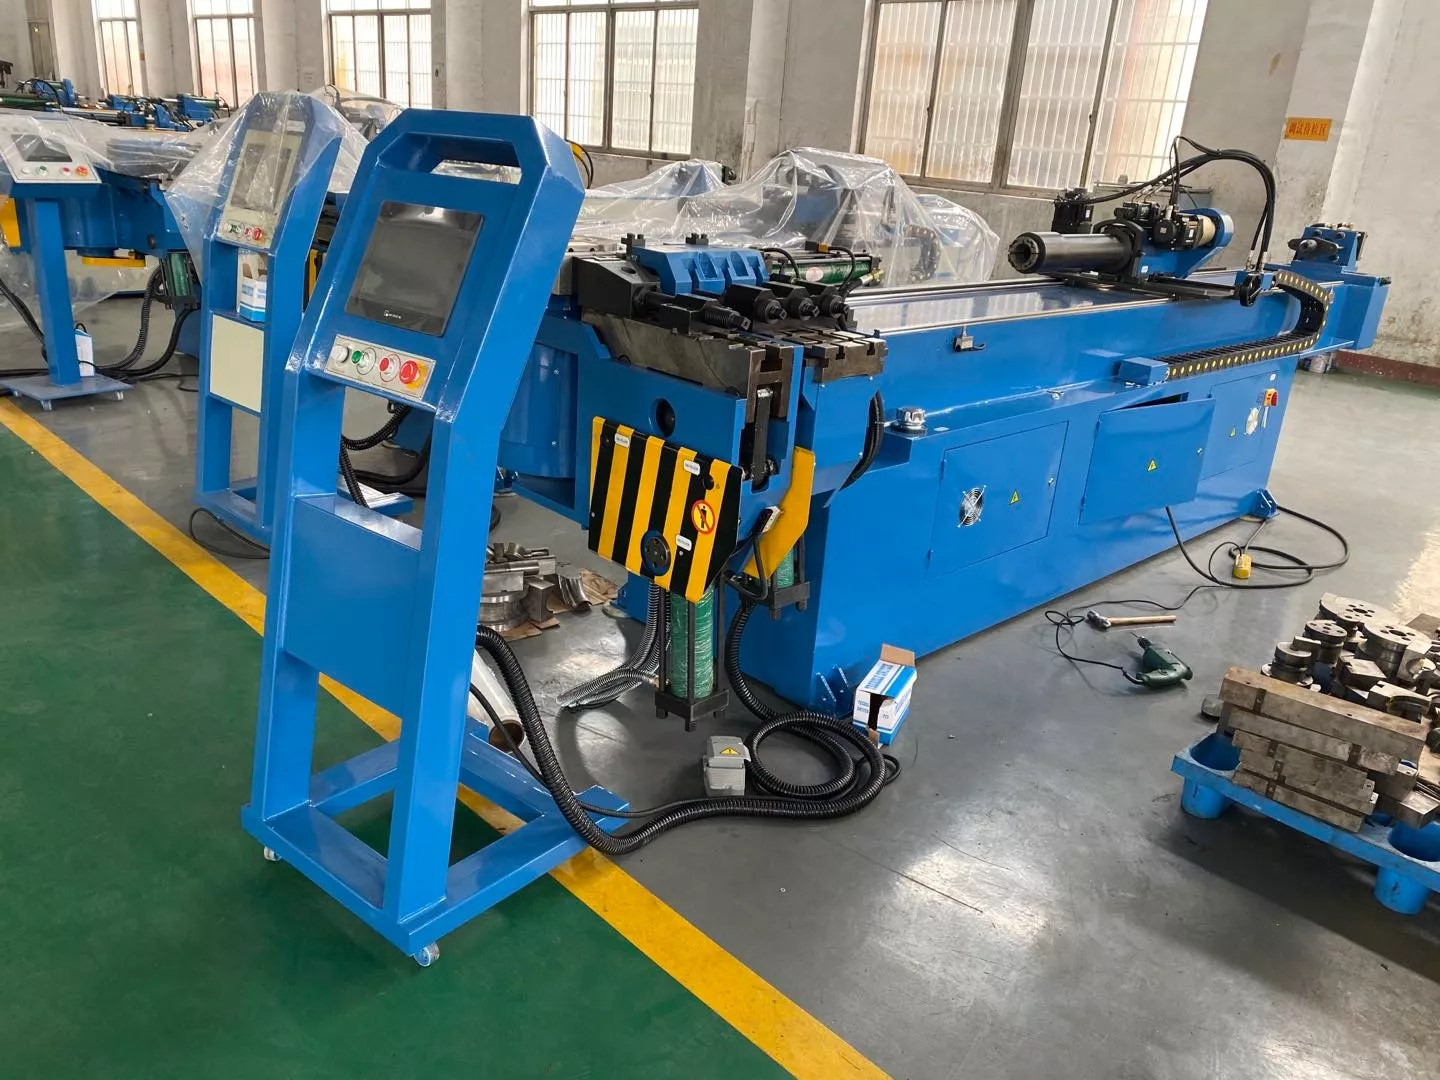 axis pipe bender gm 76cnc 2a 1s